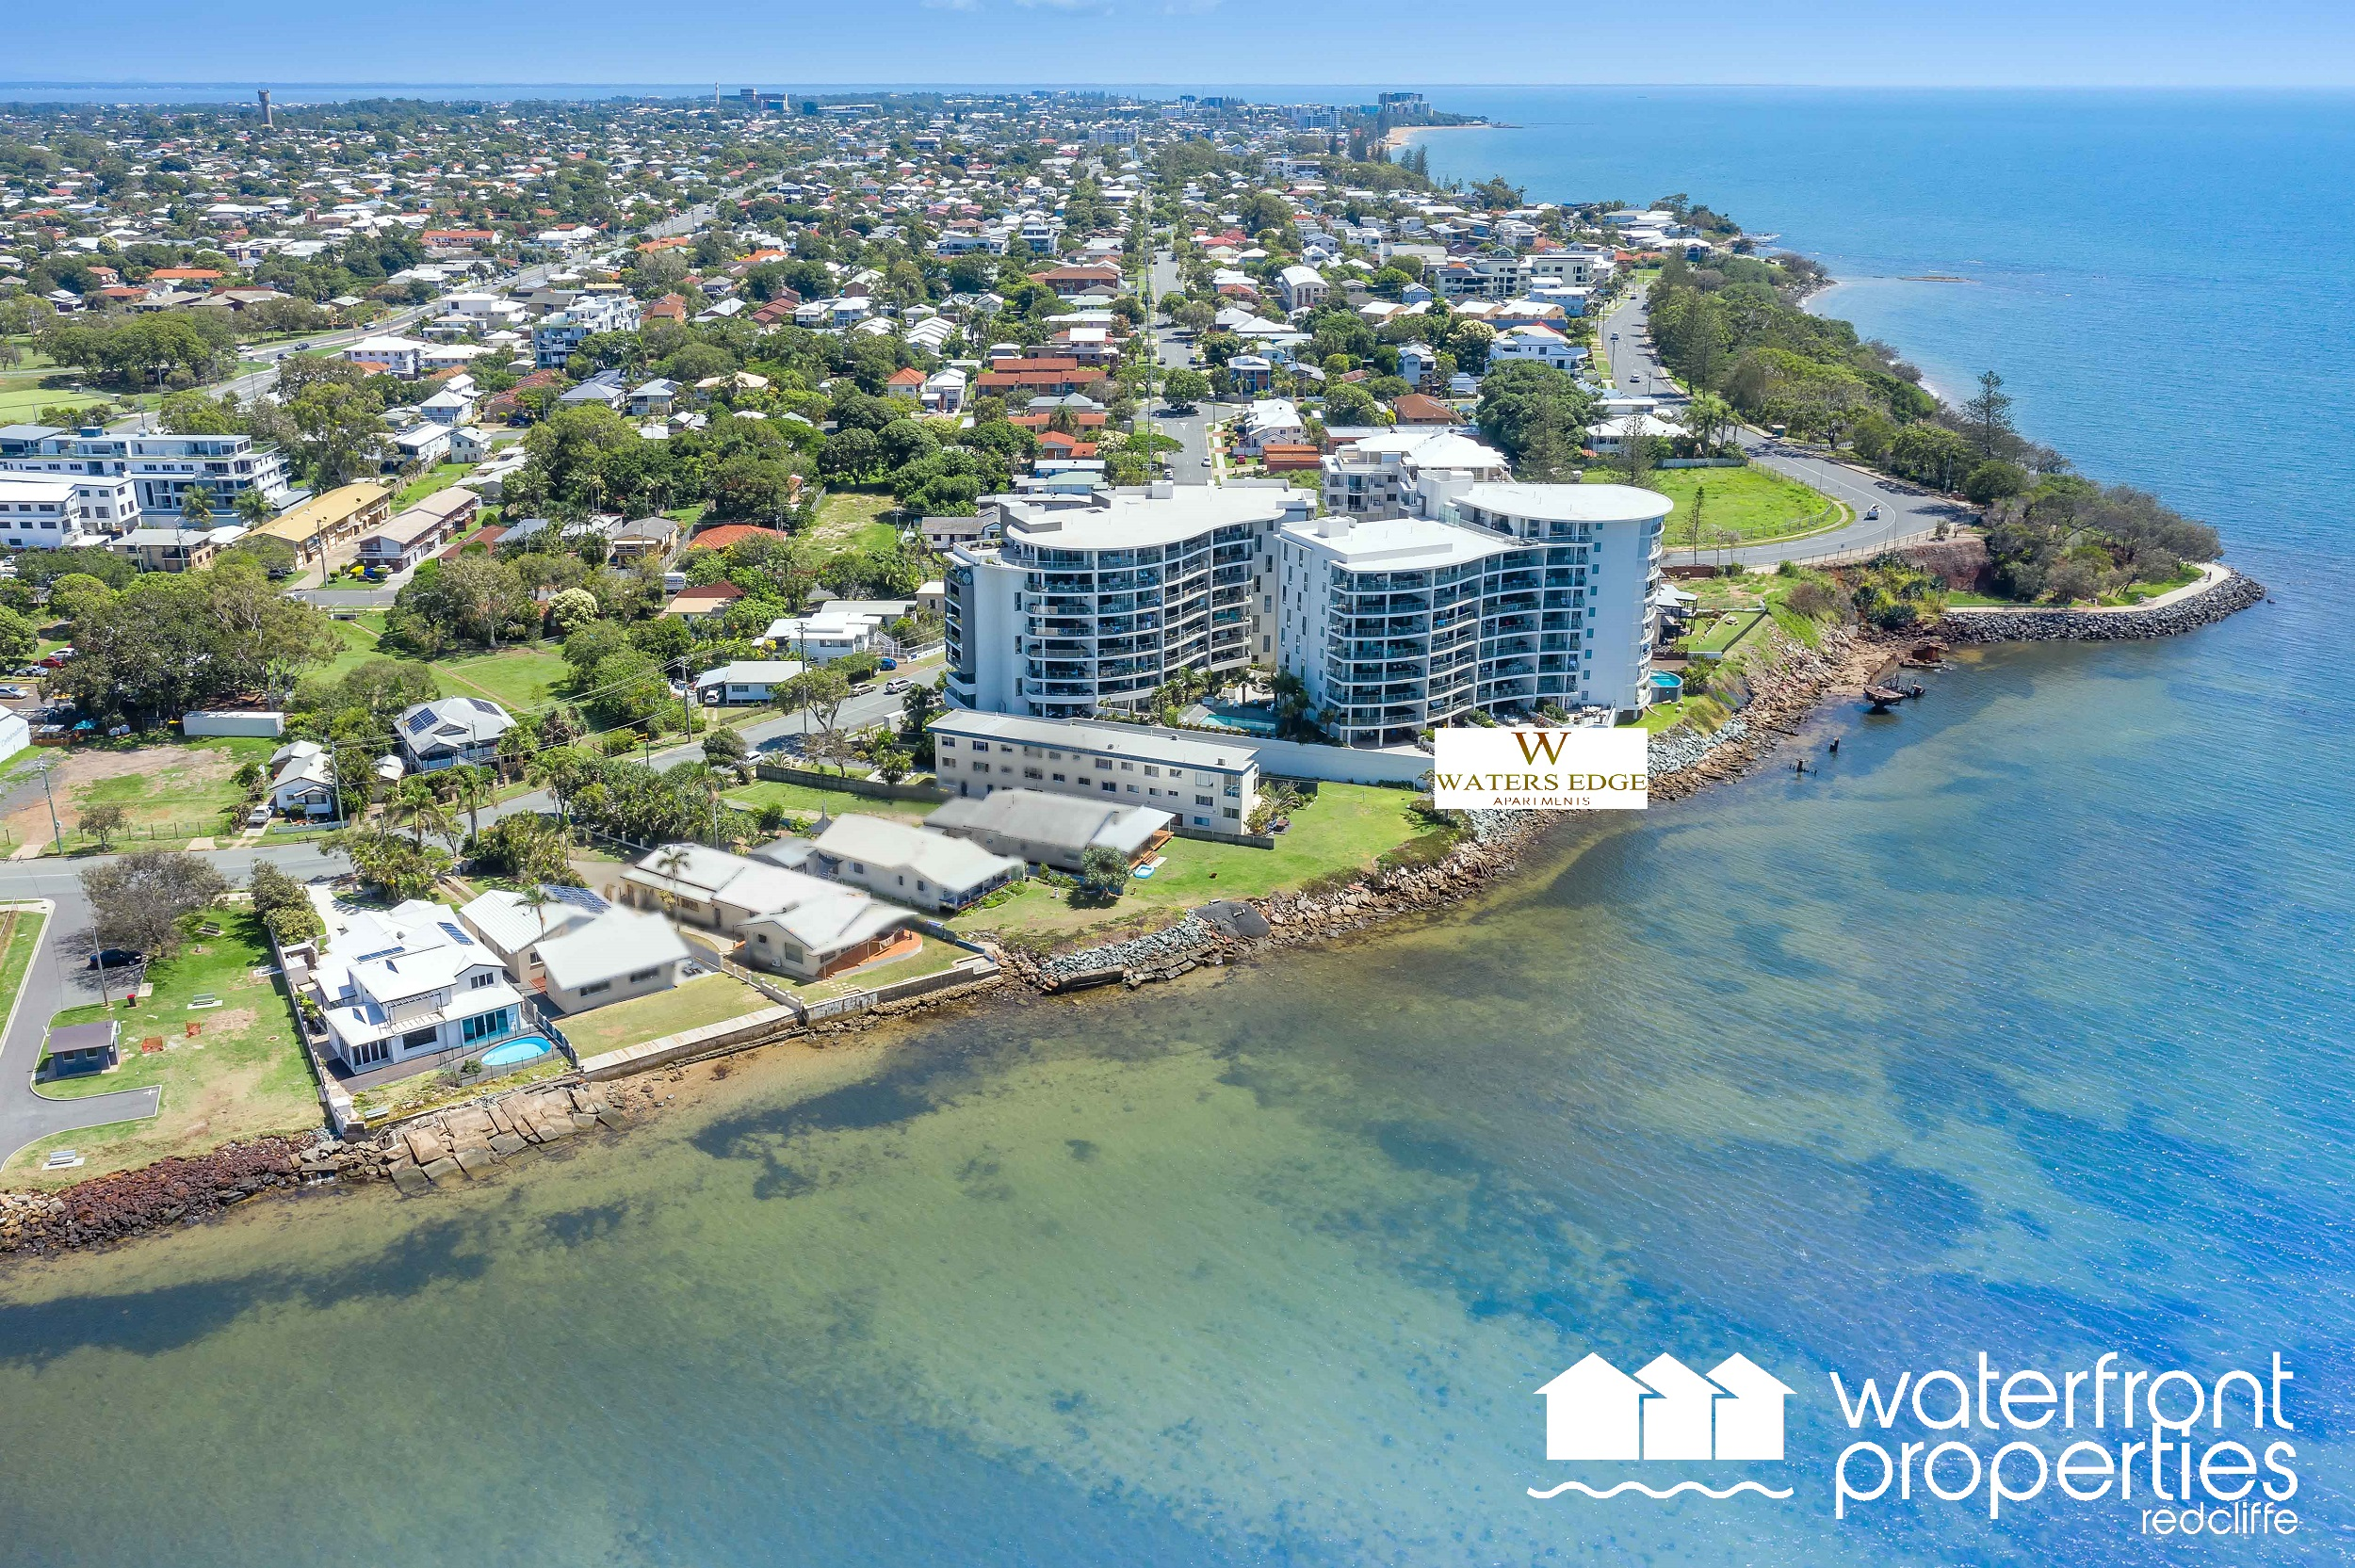 47/36 WOODCLIFFE CRESCENT, WOODY POINT  QLD  4019 2